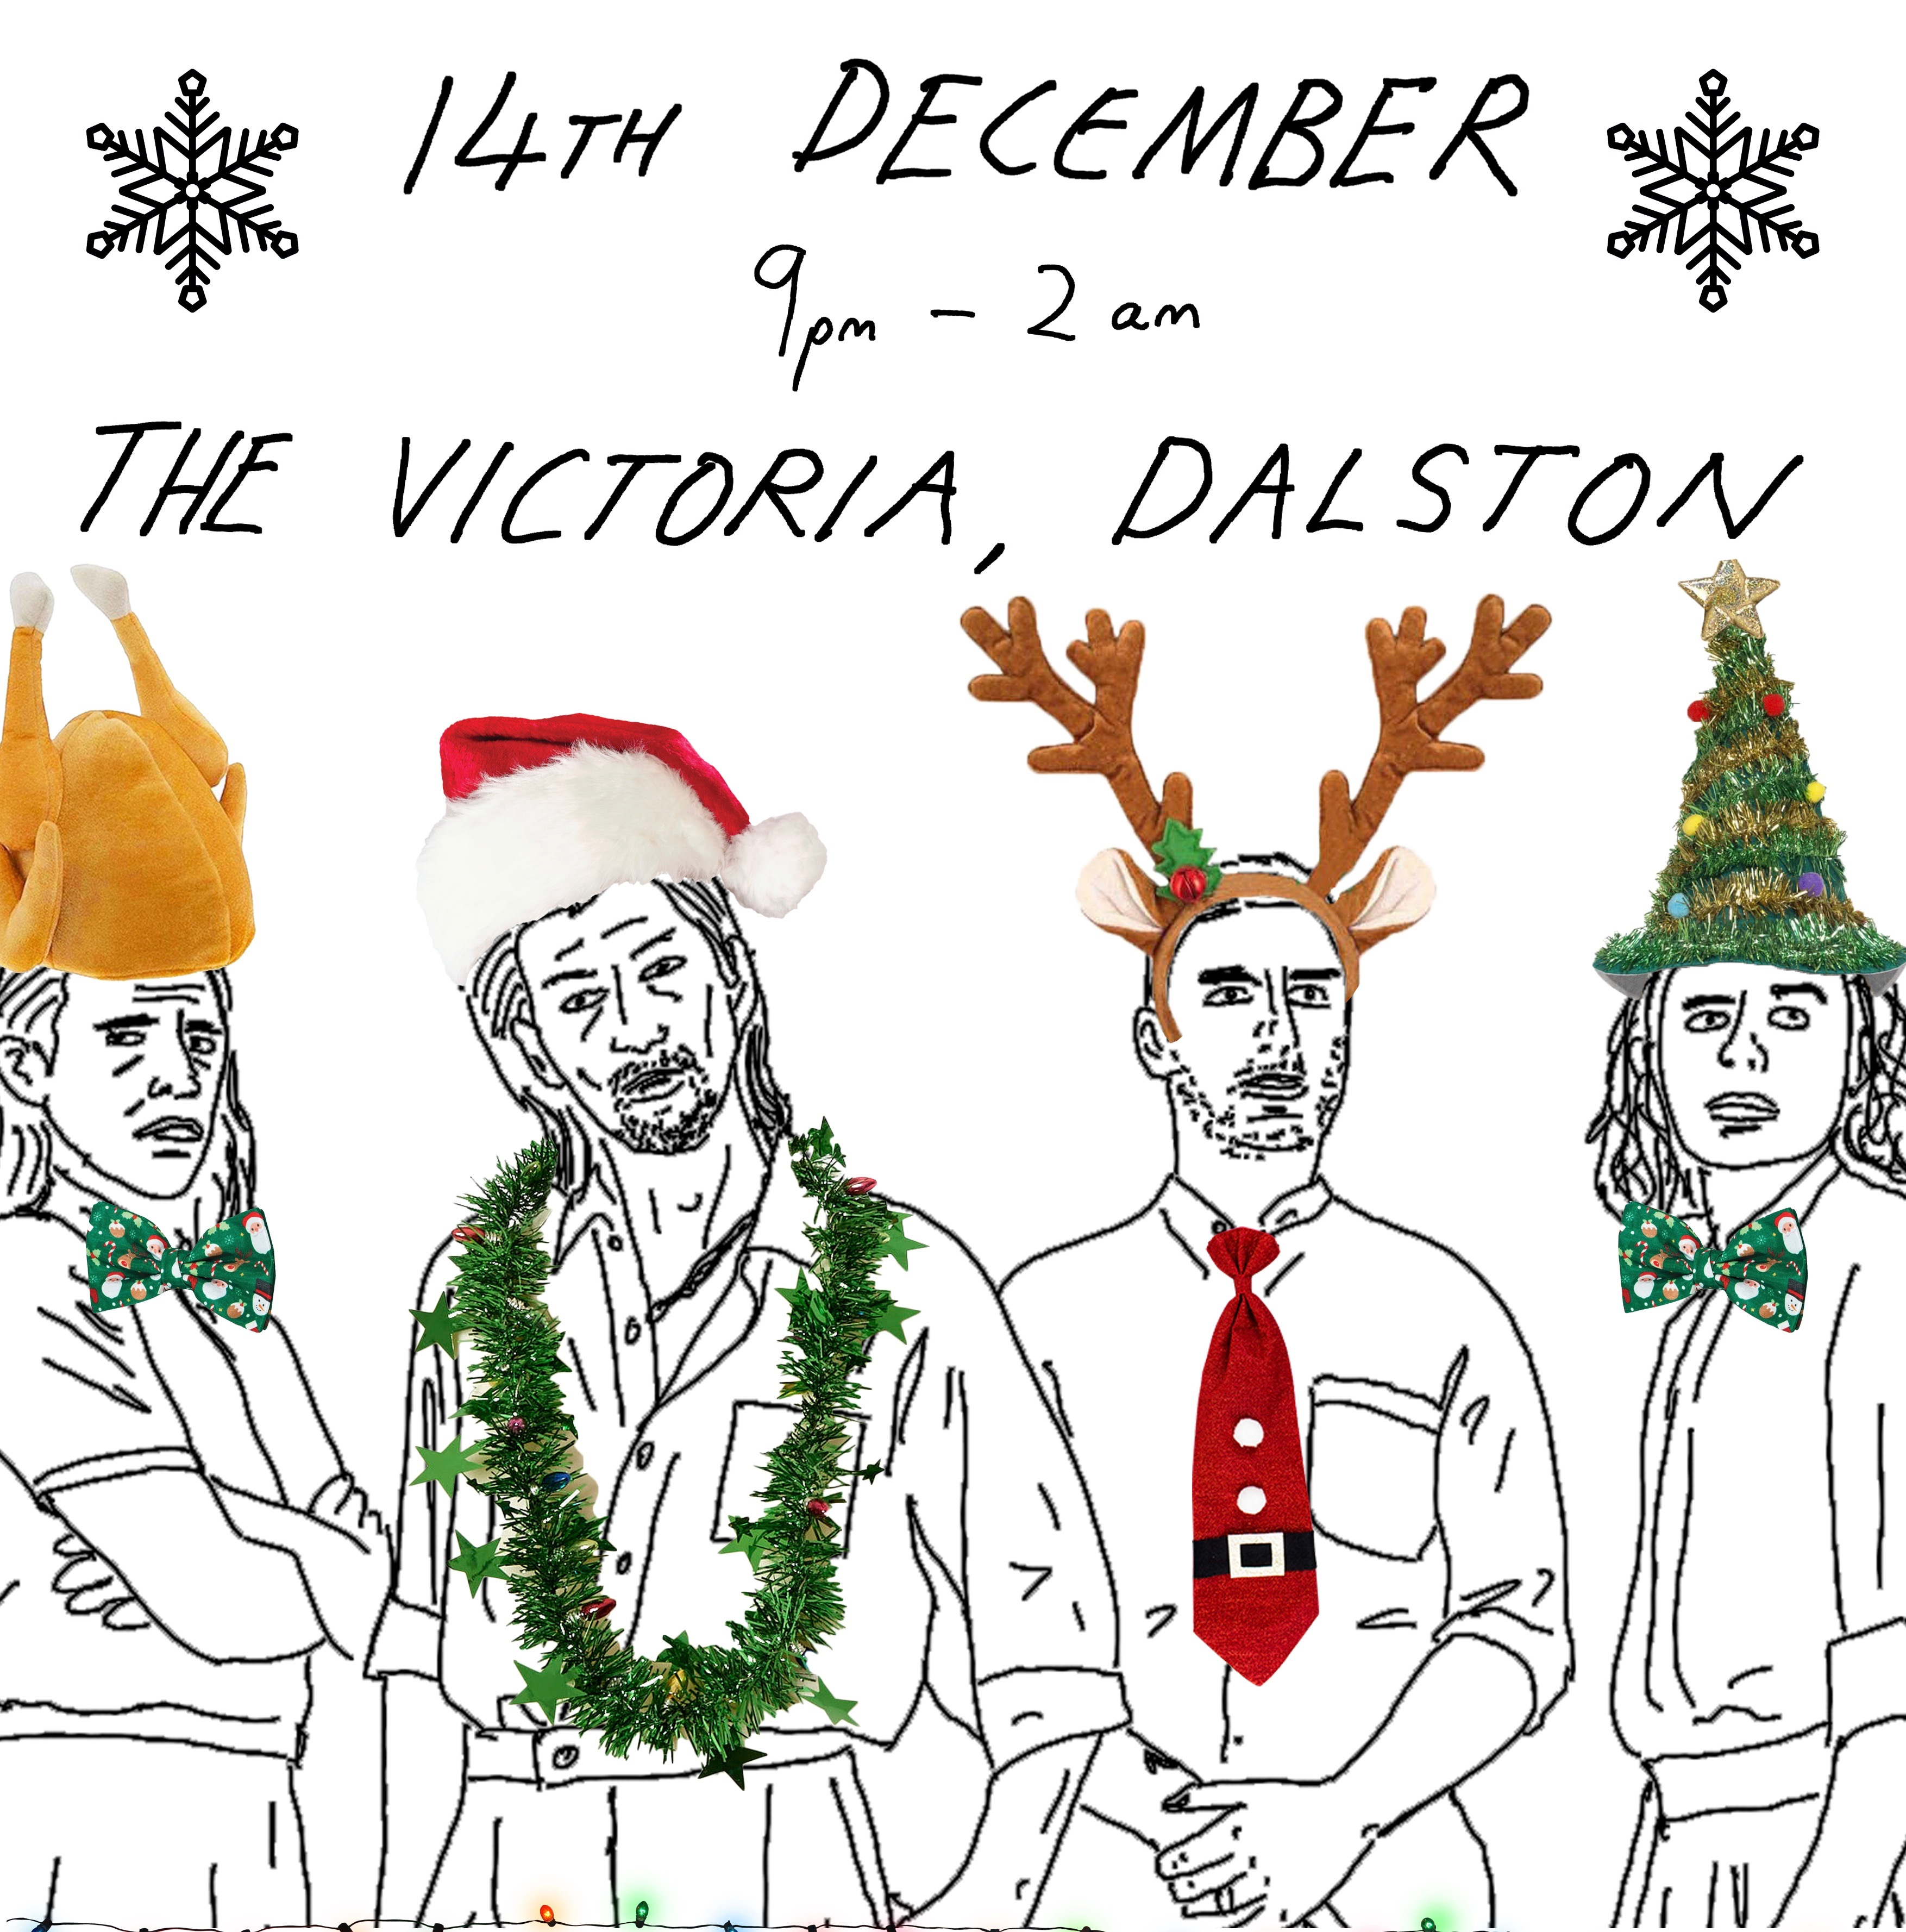 Shit Indie Disco - xmas special at The Victoria promotional image